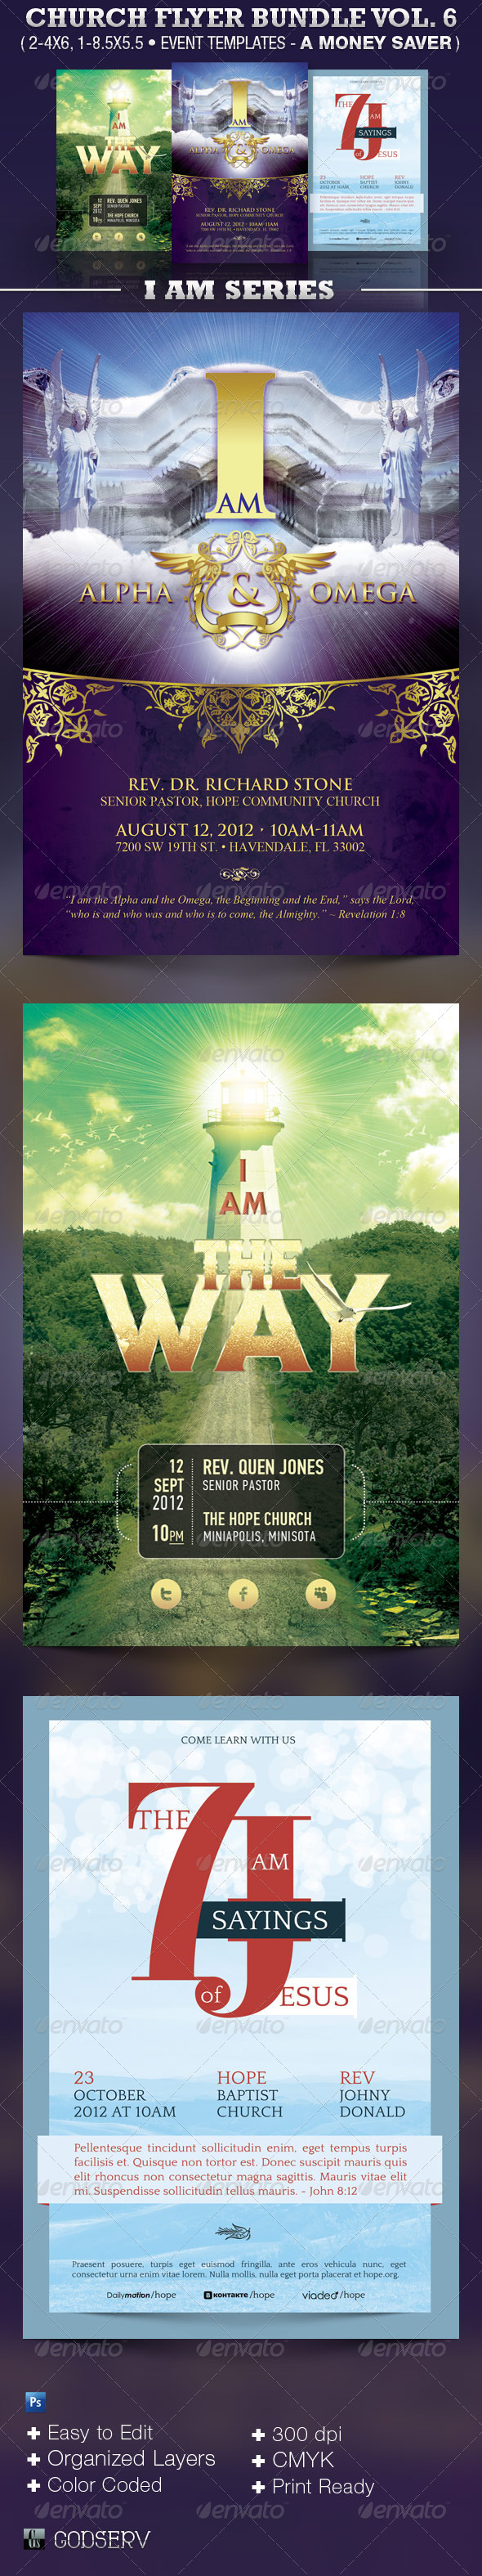 Church Flyer Template Bundle Vol 6 - I Am Series - Church Flyers